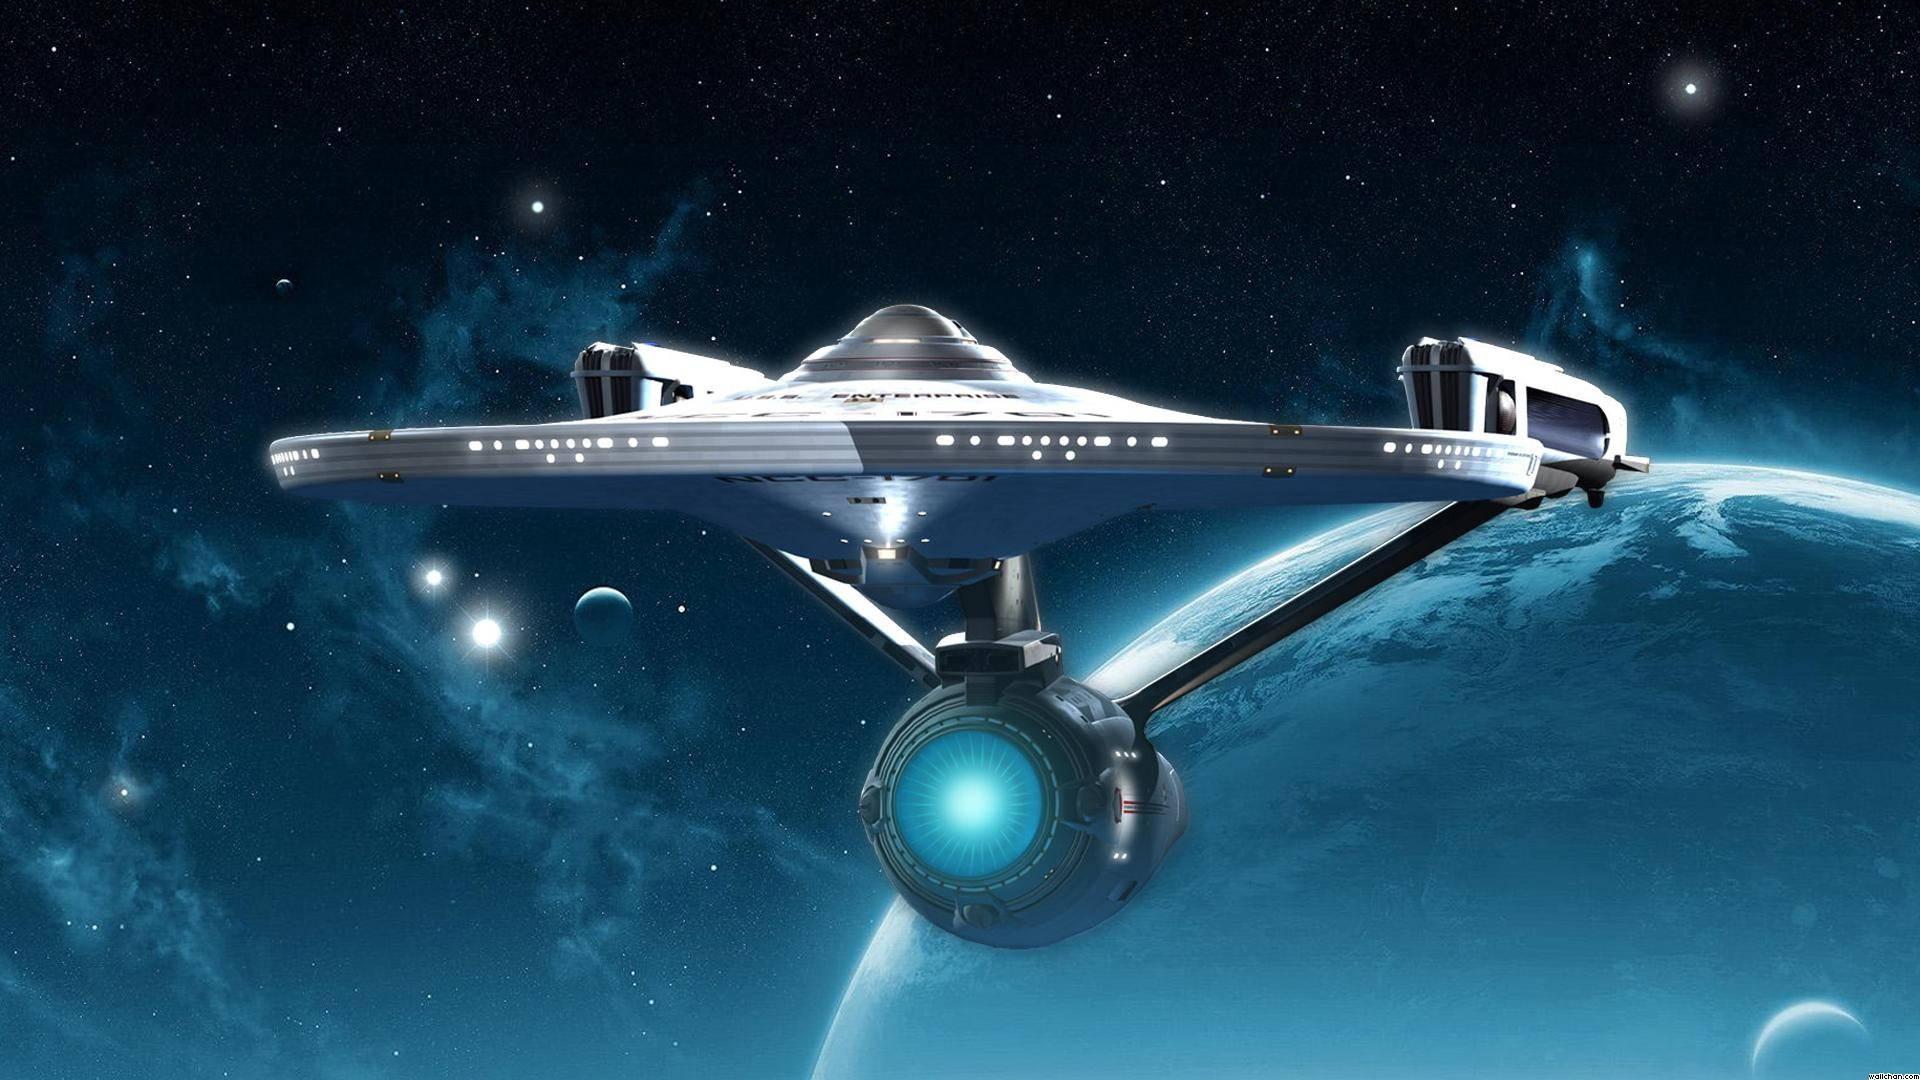 1920x1080 Star Trek Enterprise Wallpaper - Viewing Gallery